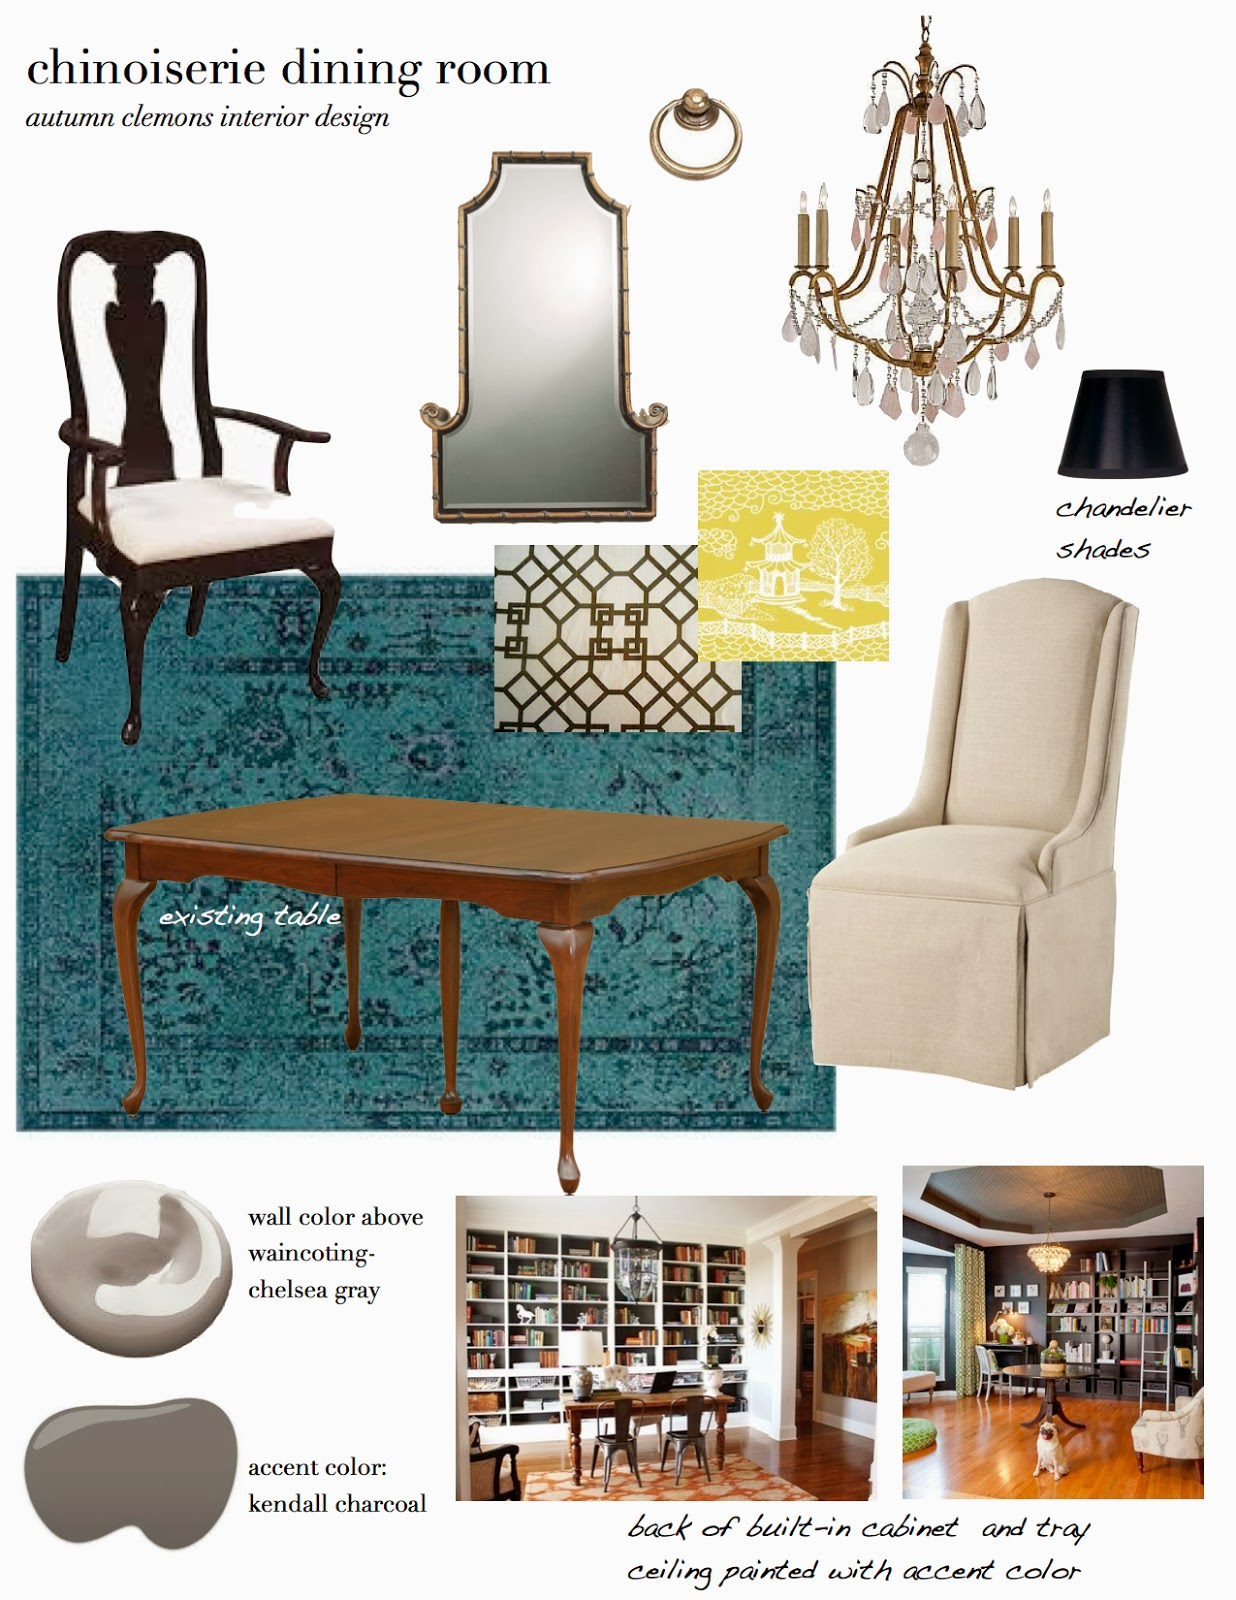 Design Dump Plan Chinoiserie Dining Room 2 Ways